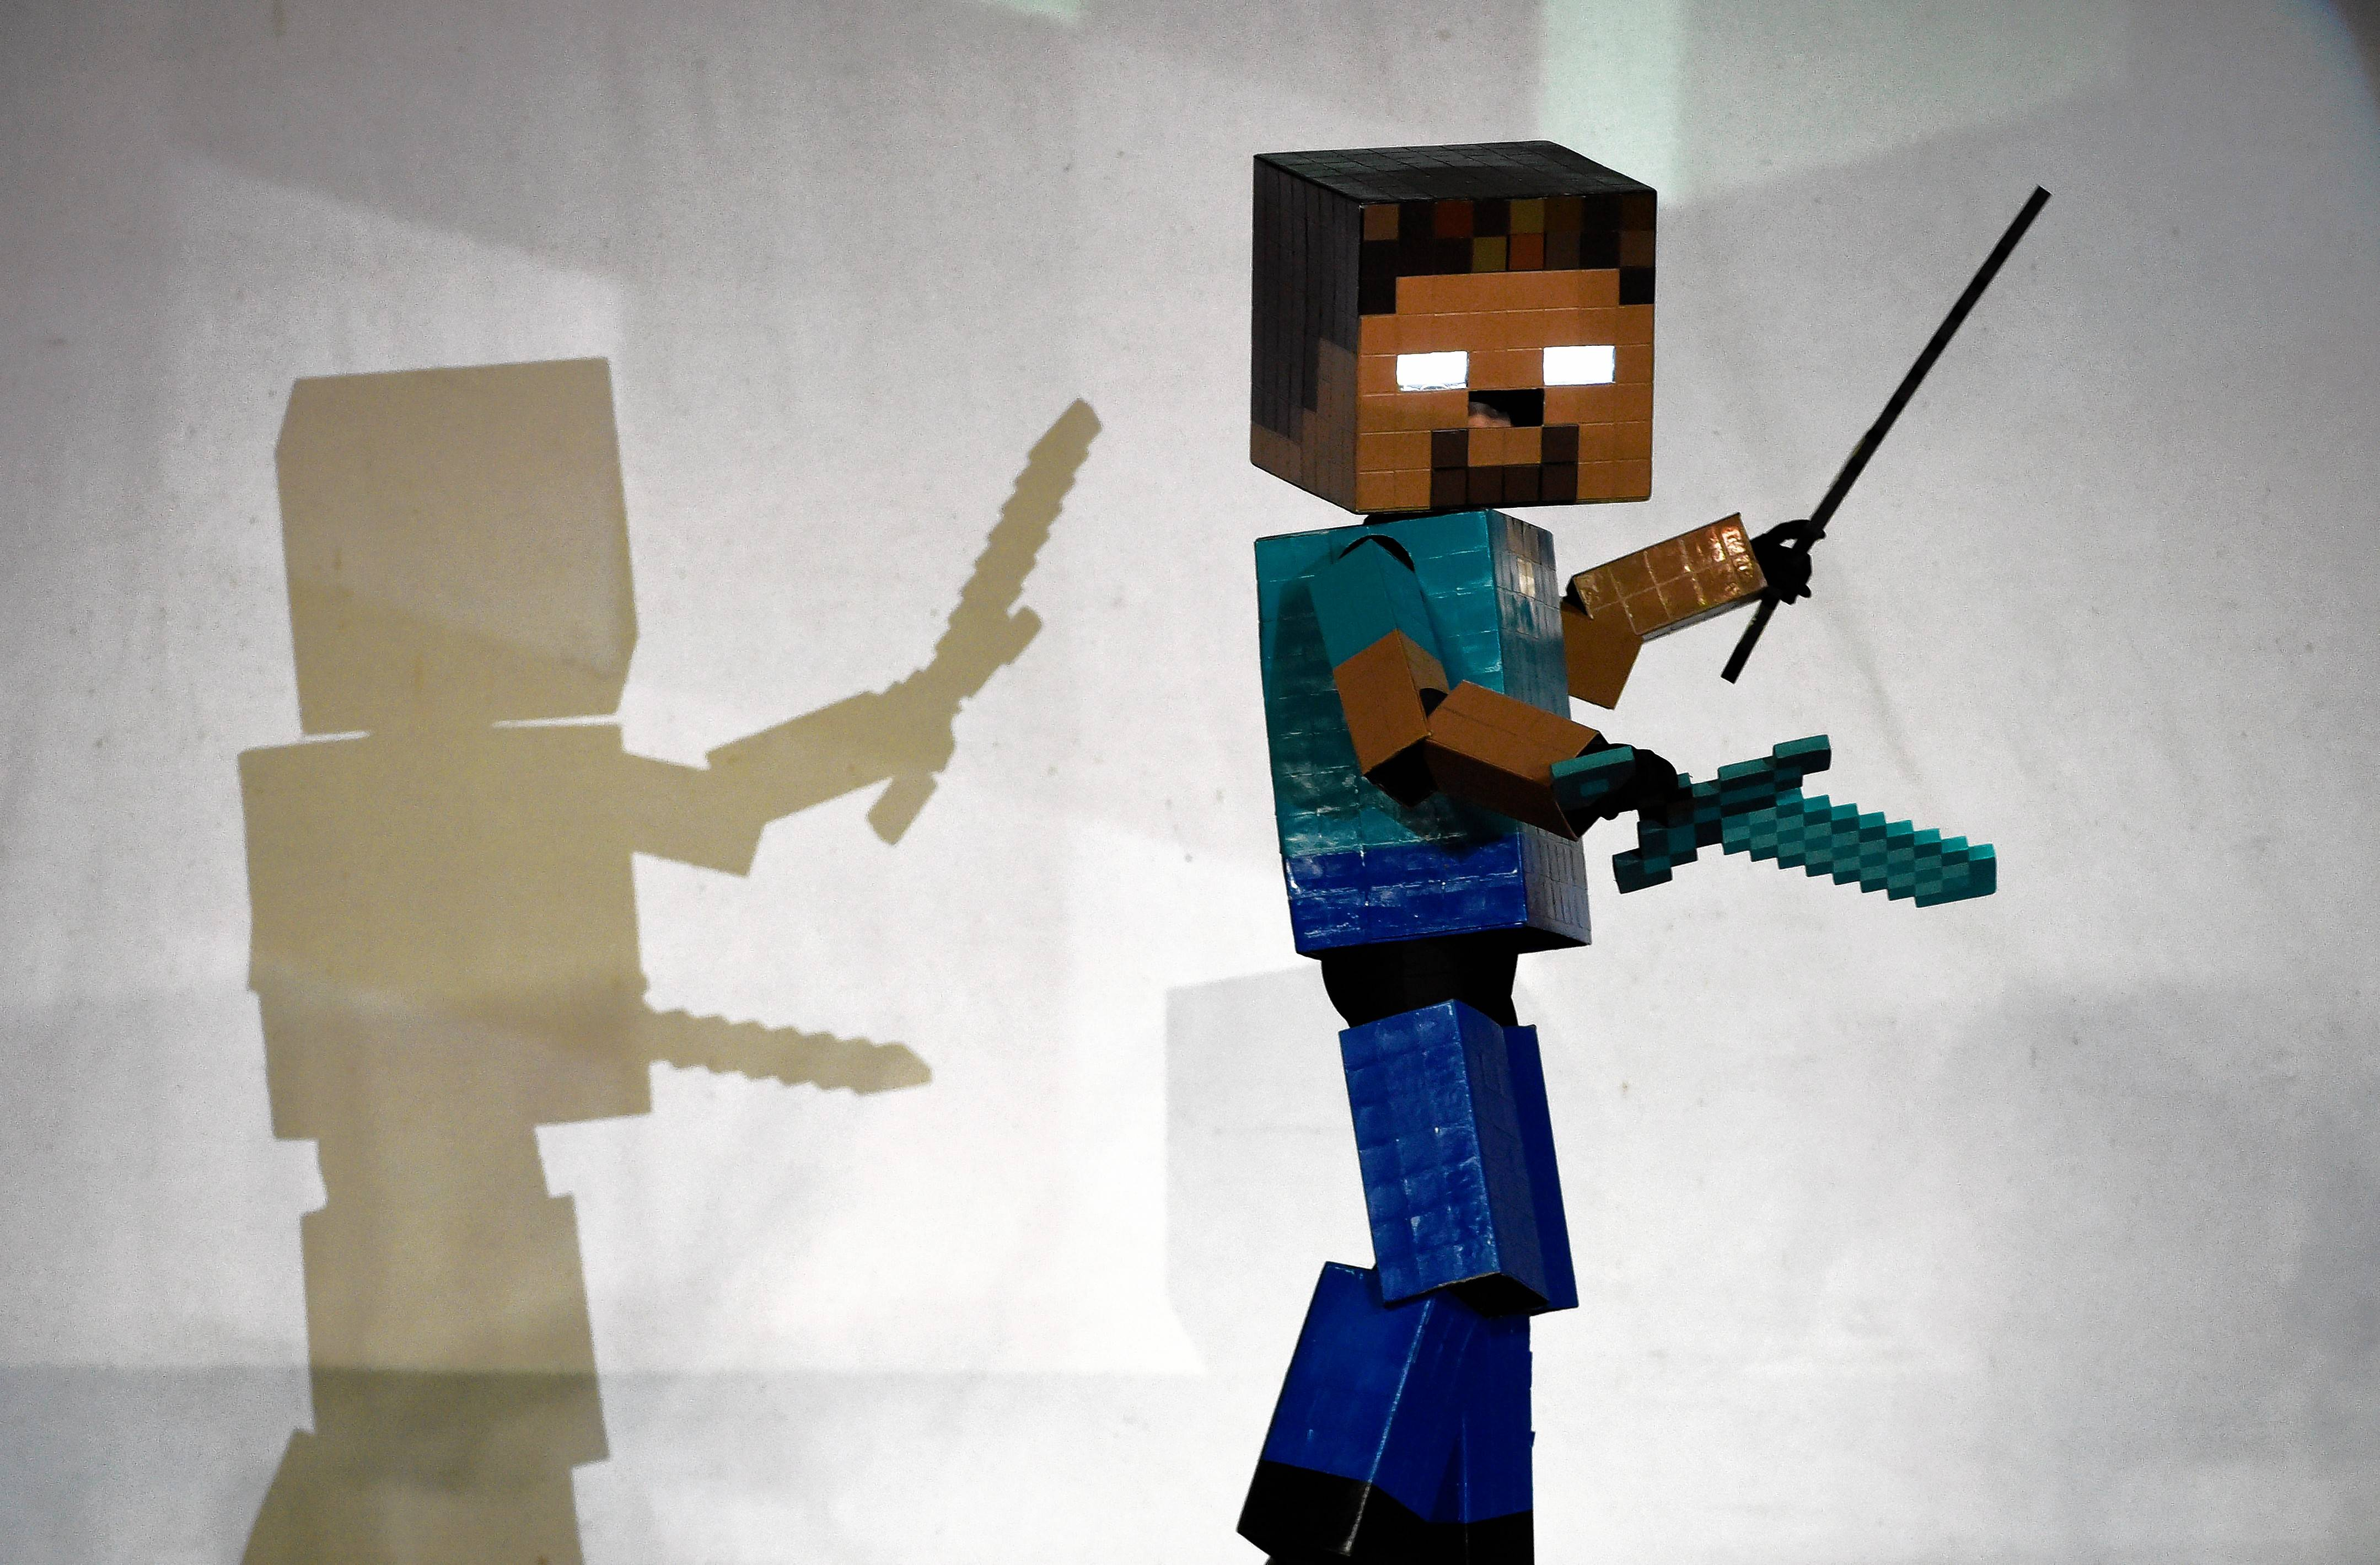 Expect fans to dress up in pixilated costumes for Minefare: The Ultimate Minecraft Experience at the Renaissance Schaumburg Convention Center this weekend.